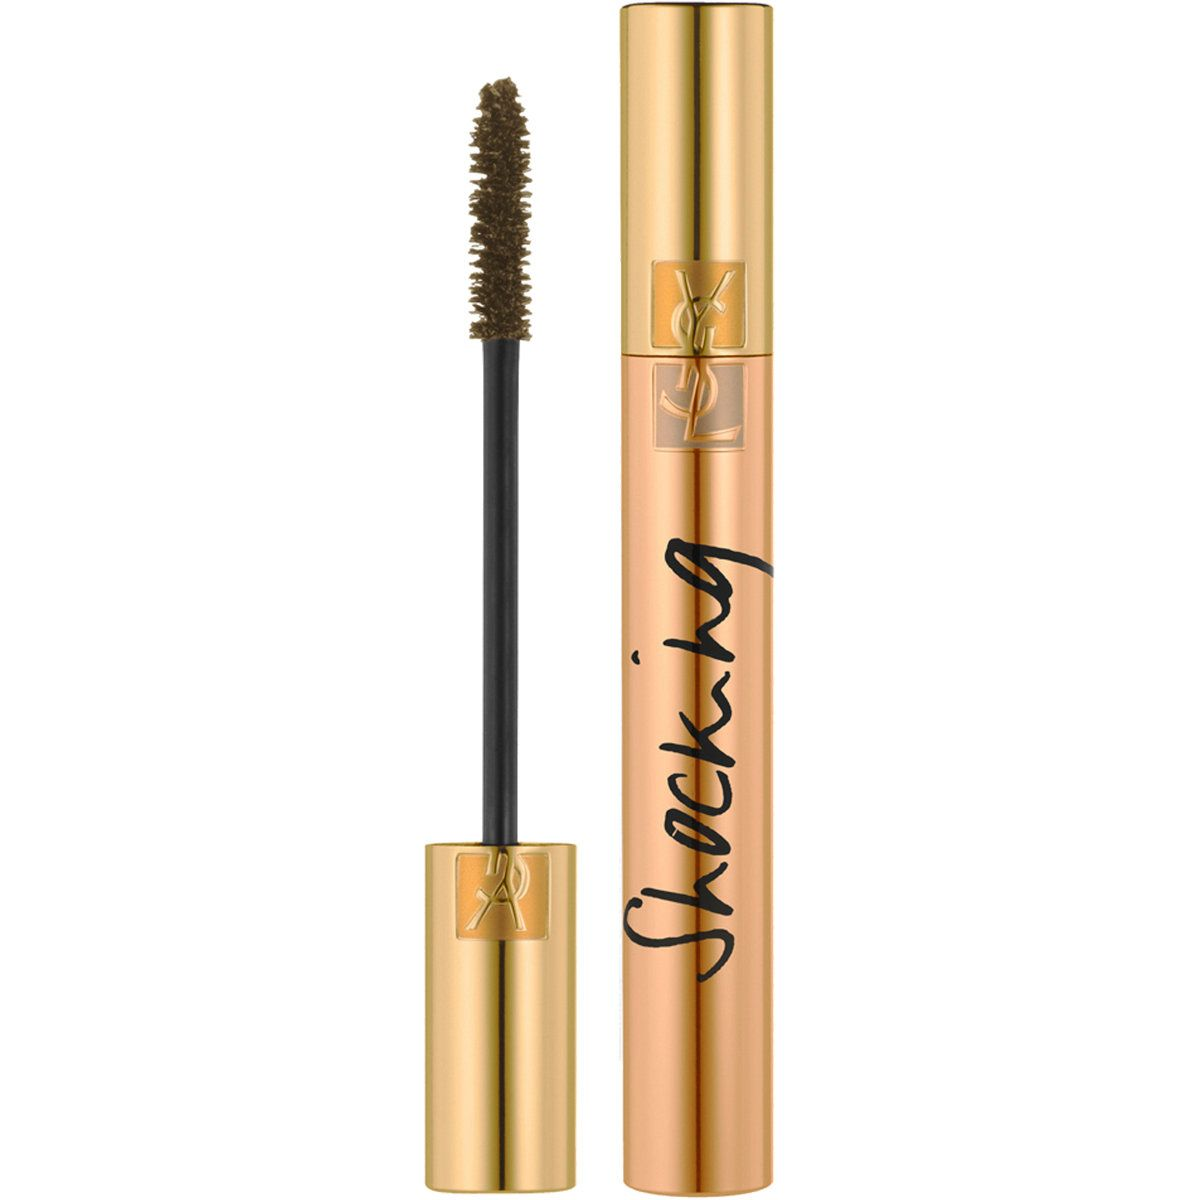 Yves Cils Volume Saint Faux Mascara ShockingMakeup Effet Laurent hdrsQt